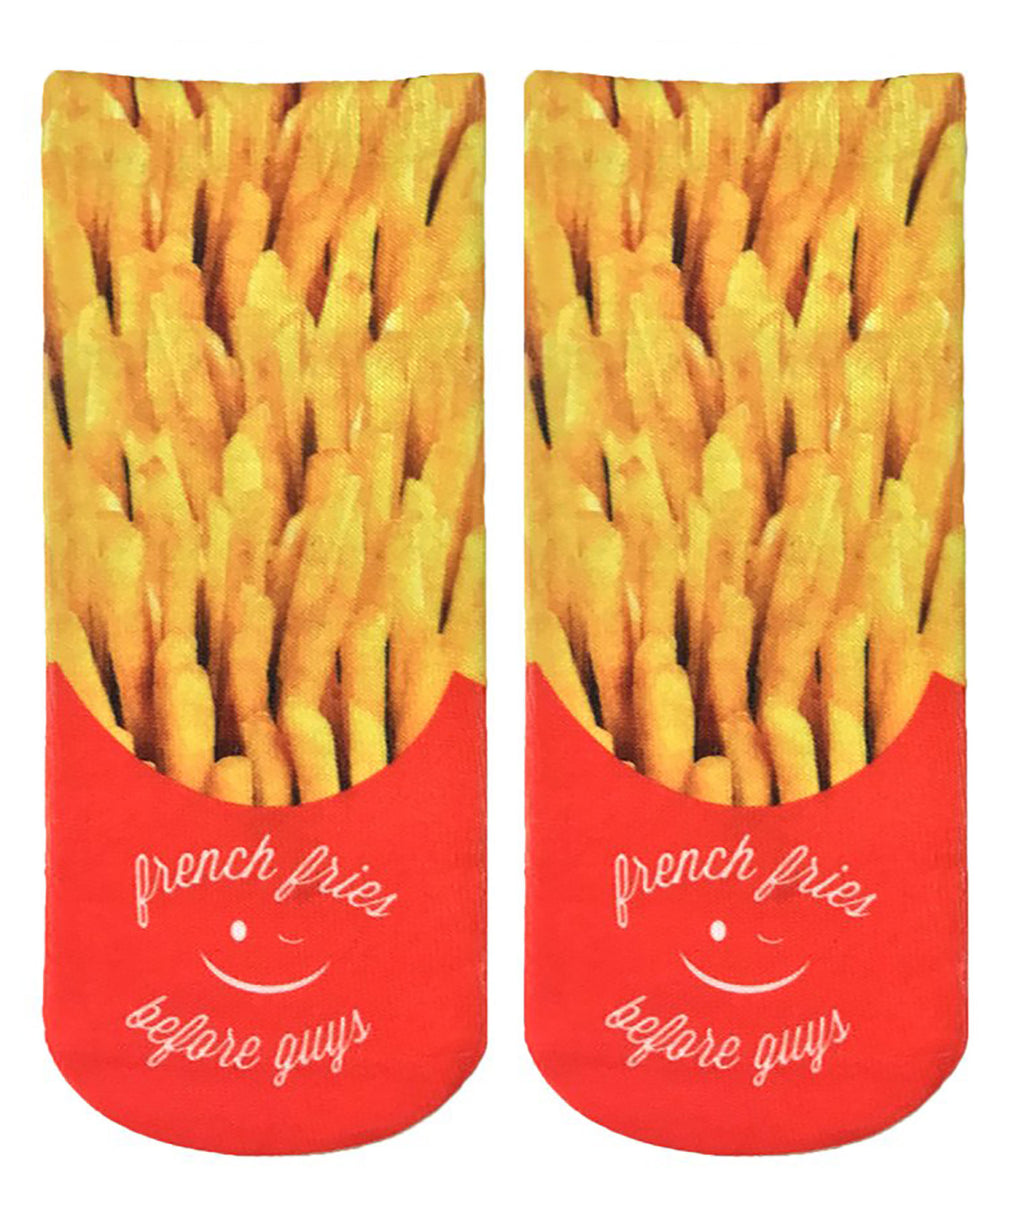 Living Royal Fries Before Guys Socks